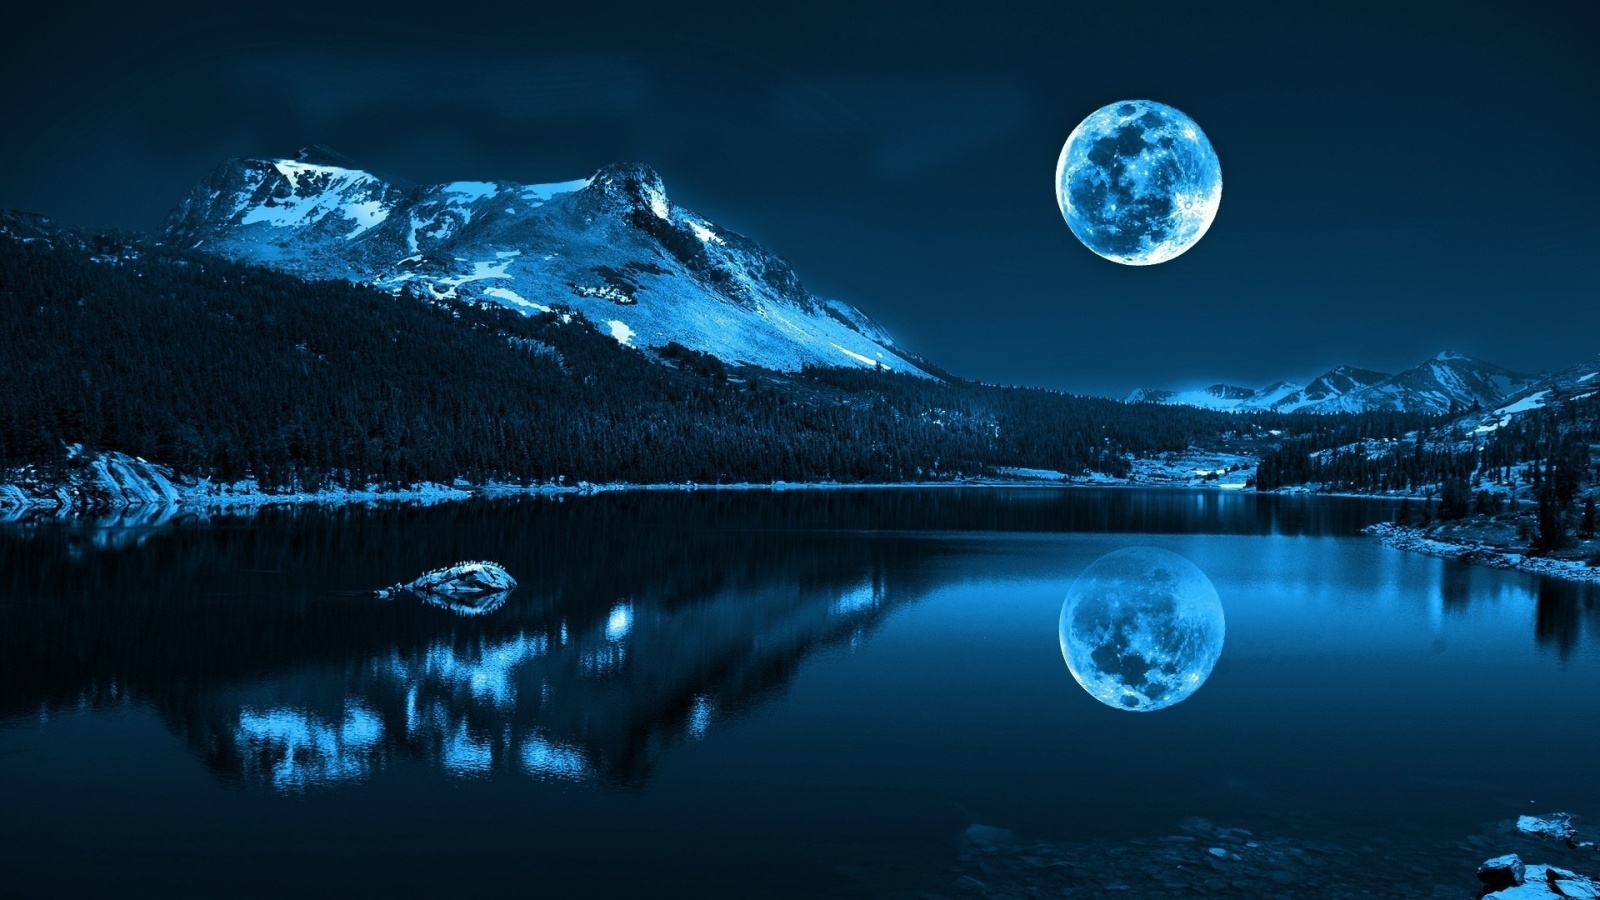 moon hd wallpaper | pattimccormick